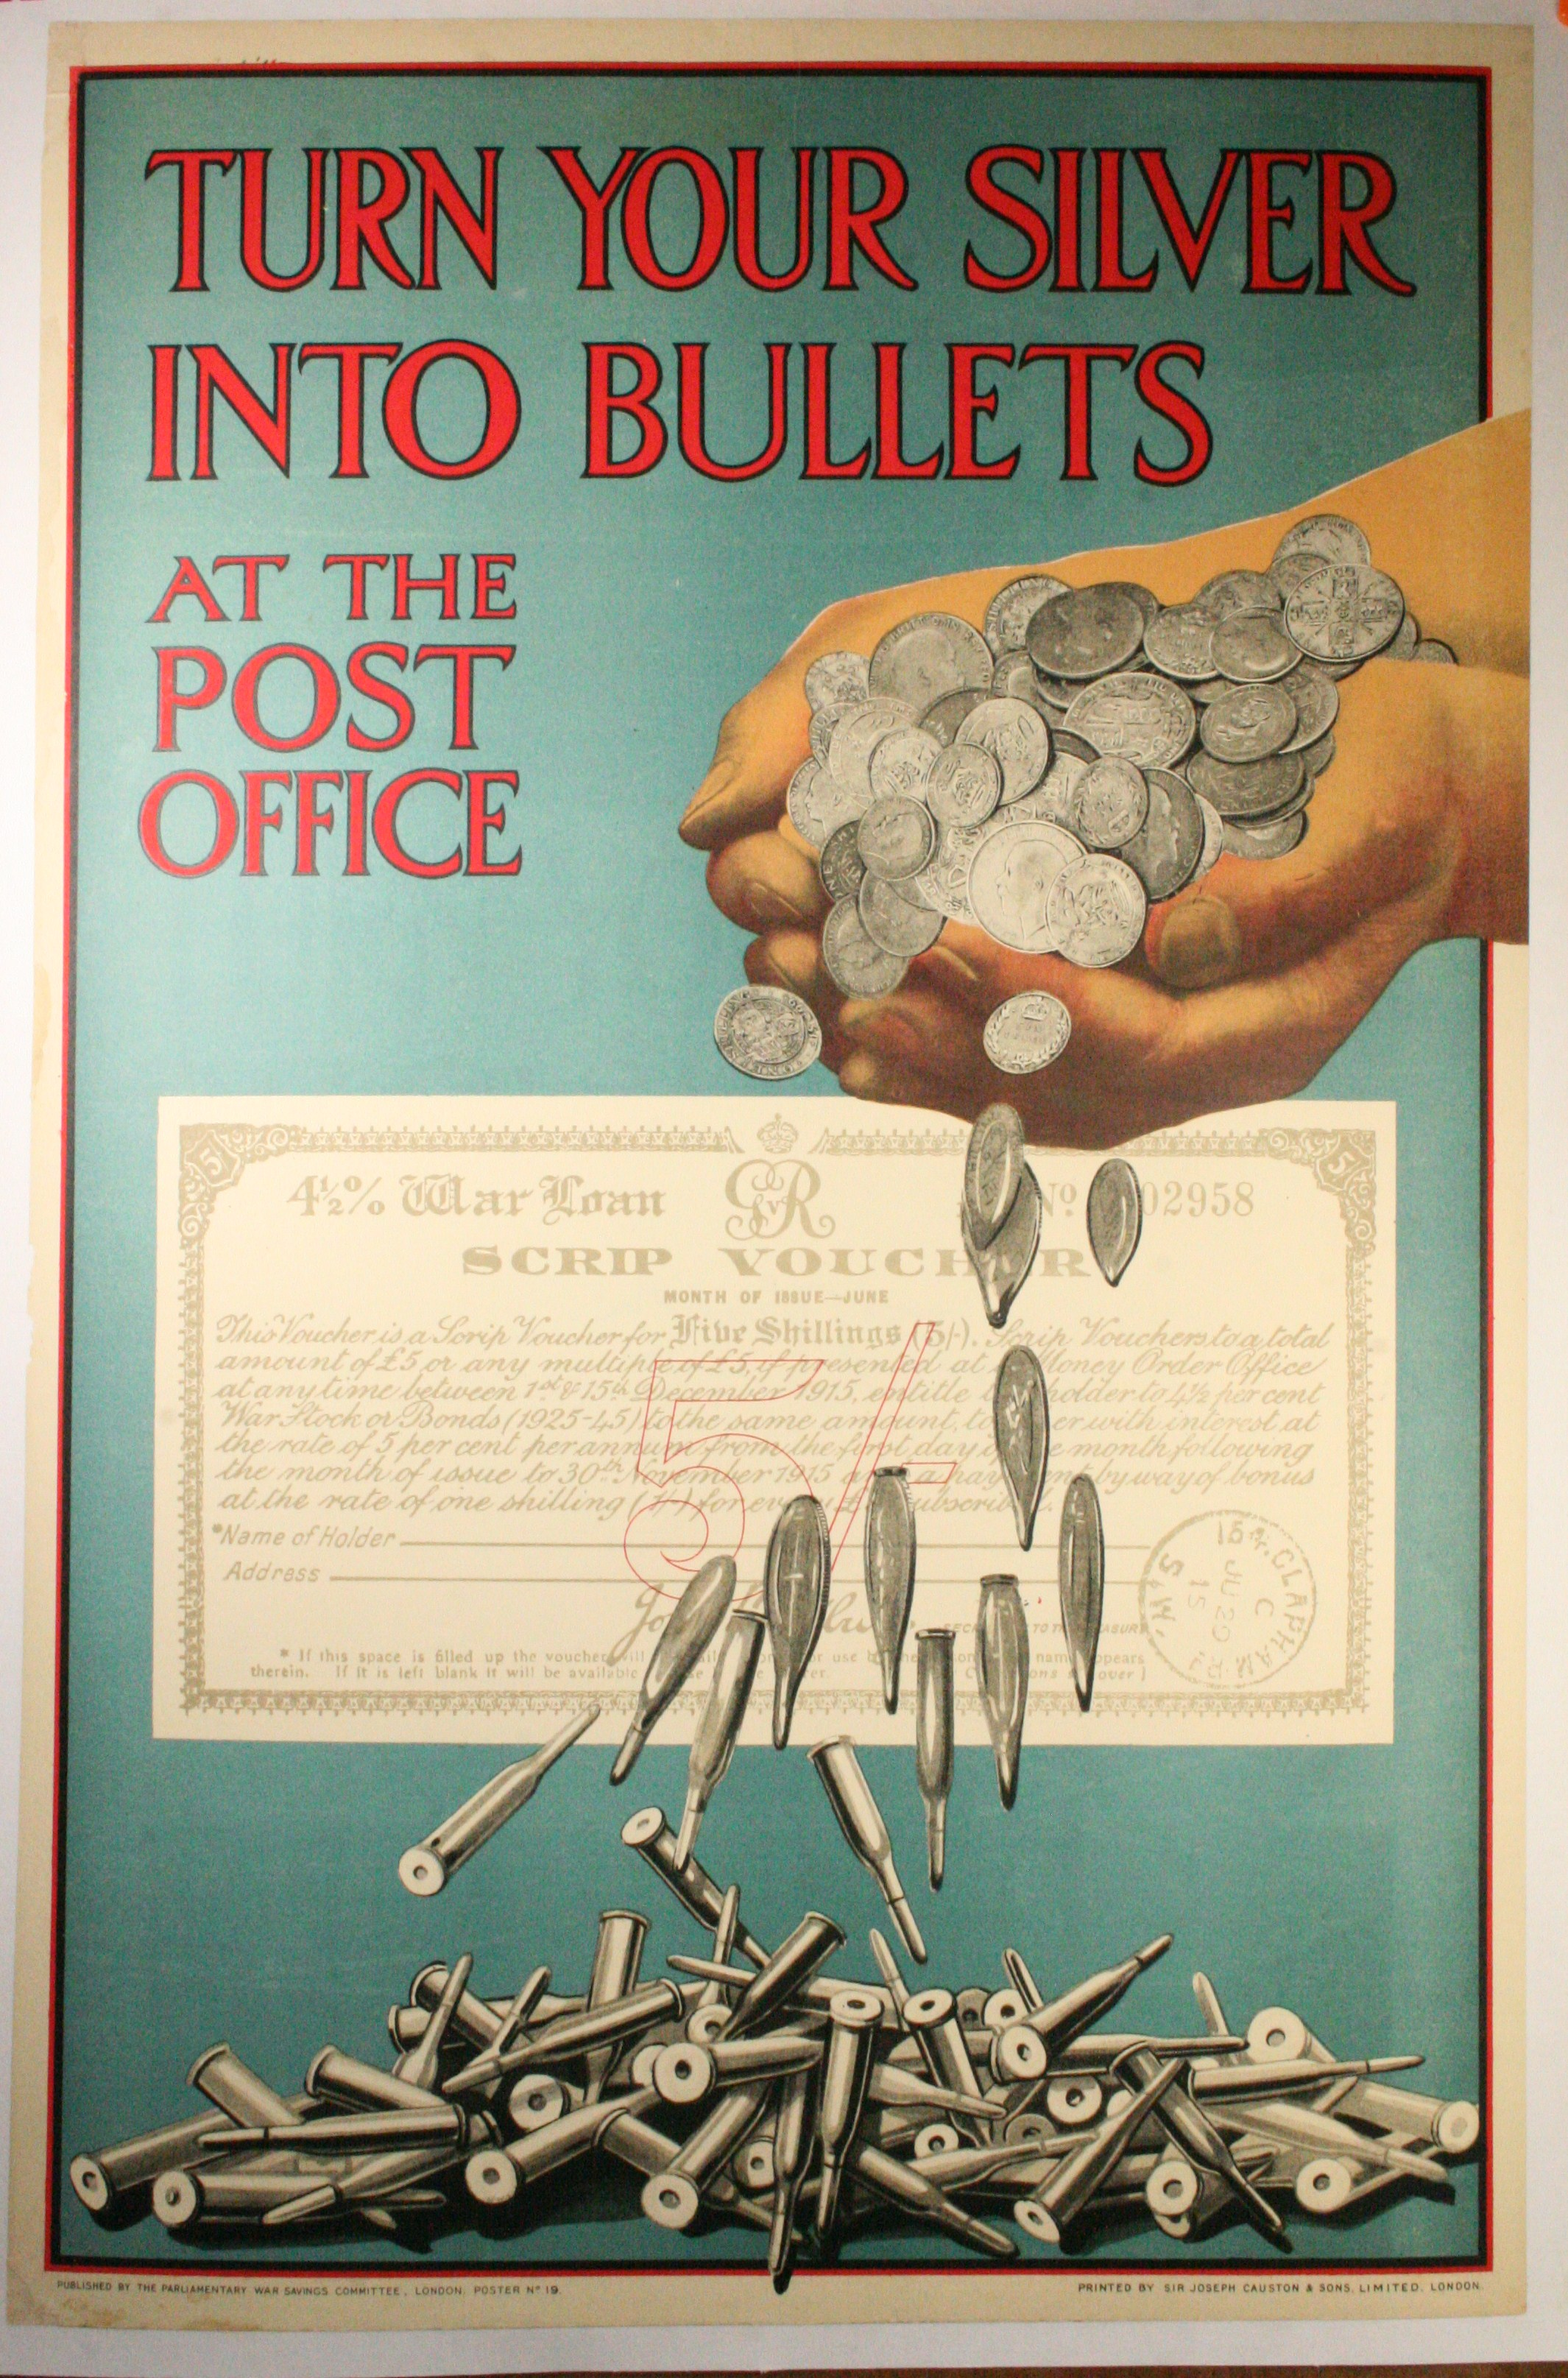 Ww1 savings bond poster turn your silver into bullets for Best store to buy posters